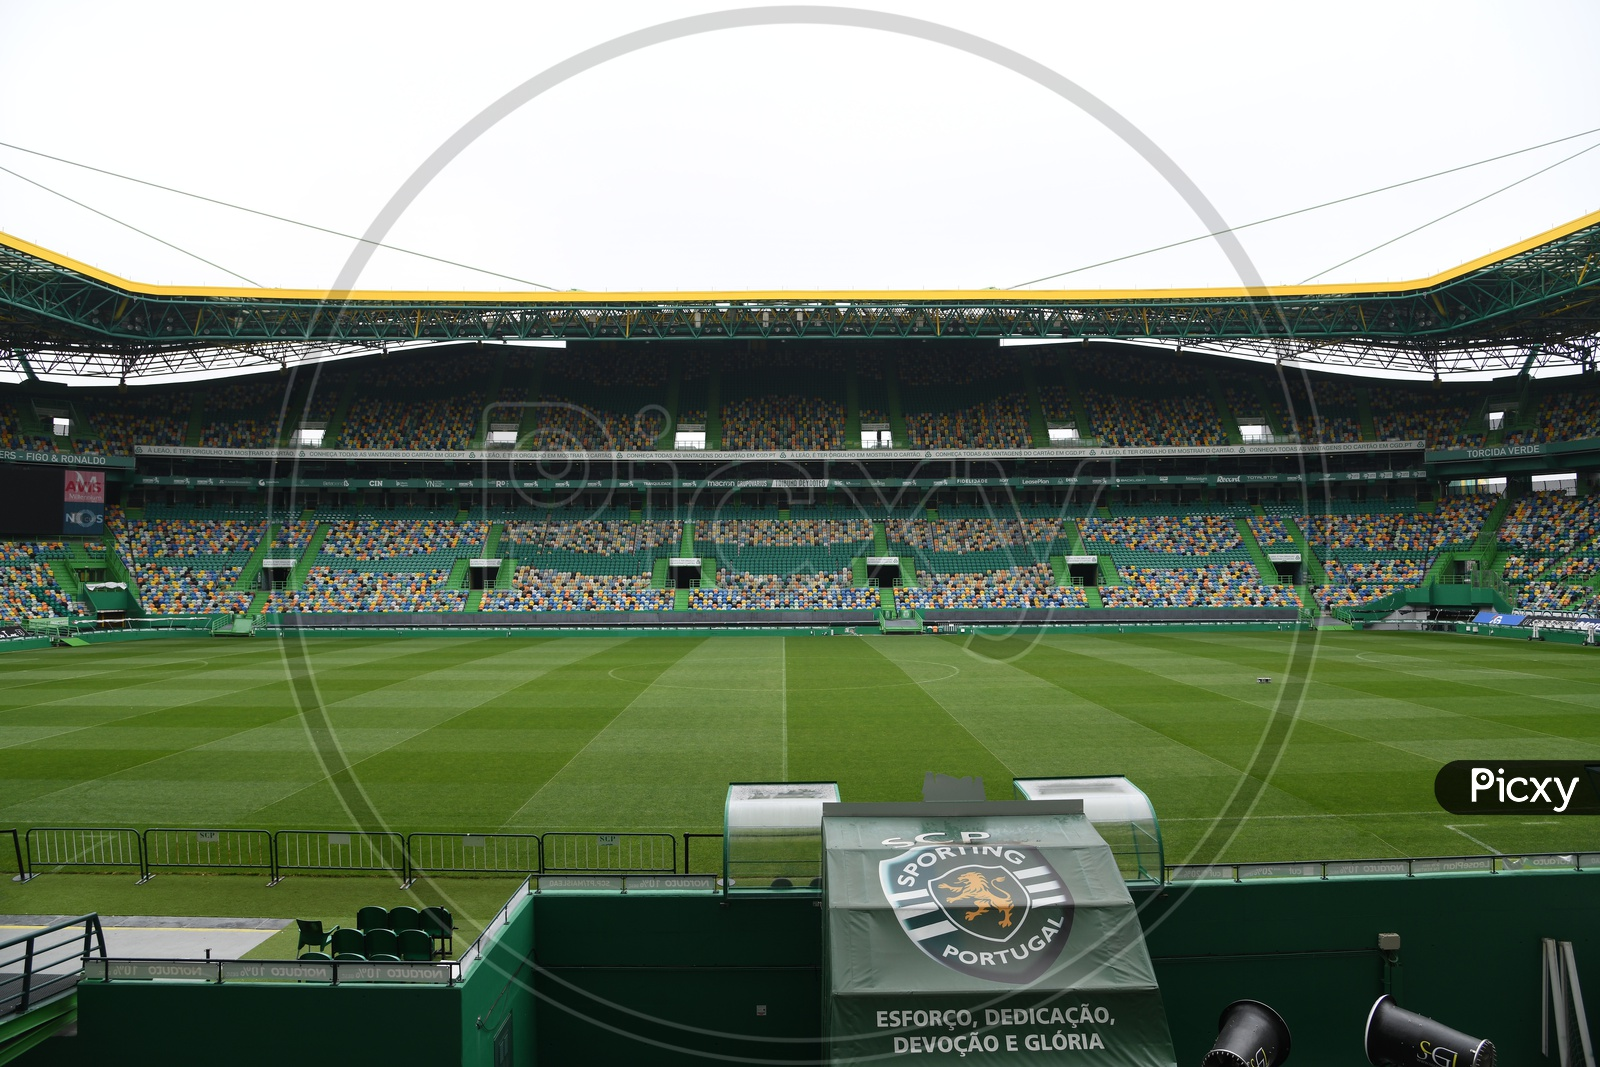 Football Stadium View With Chairs And Stands